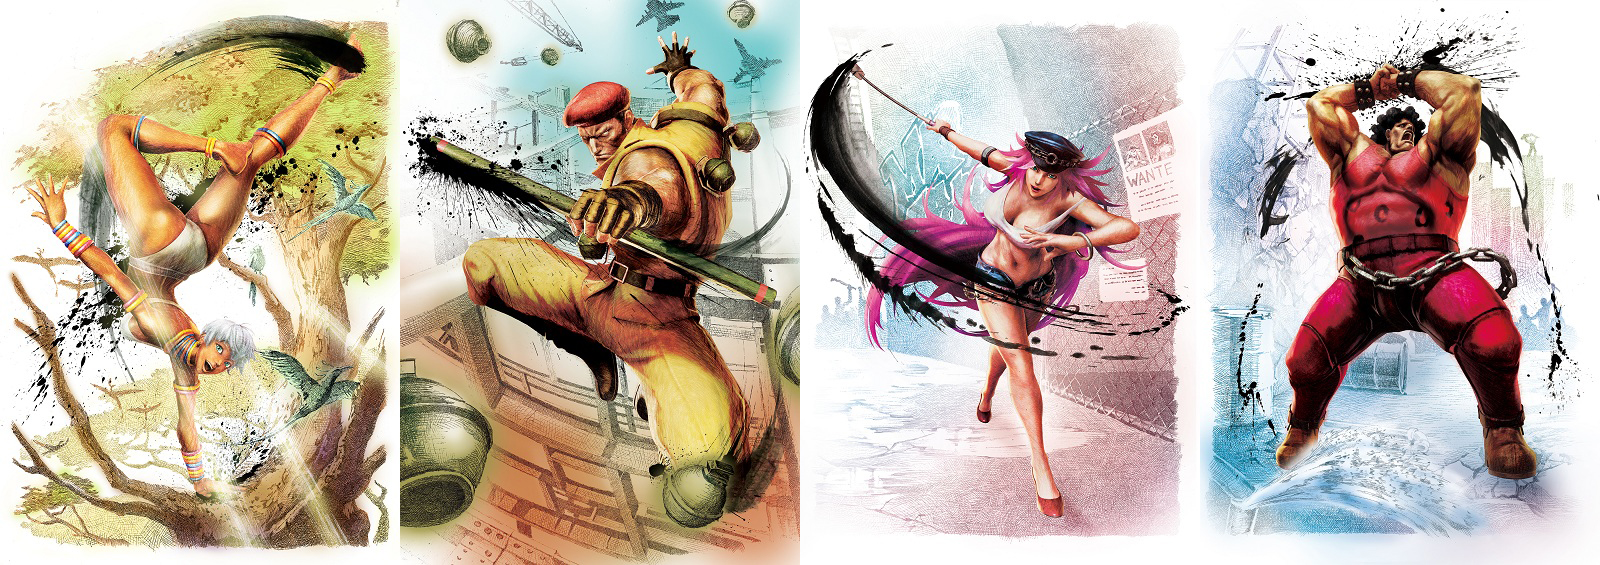 Street fighter IV elena-rolento-poison-hugo-official-art